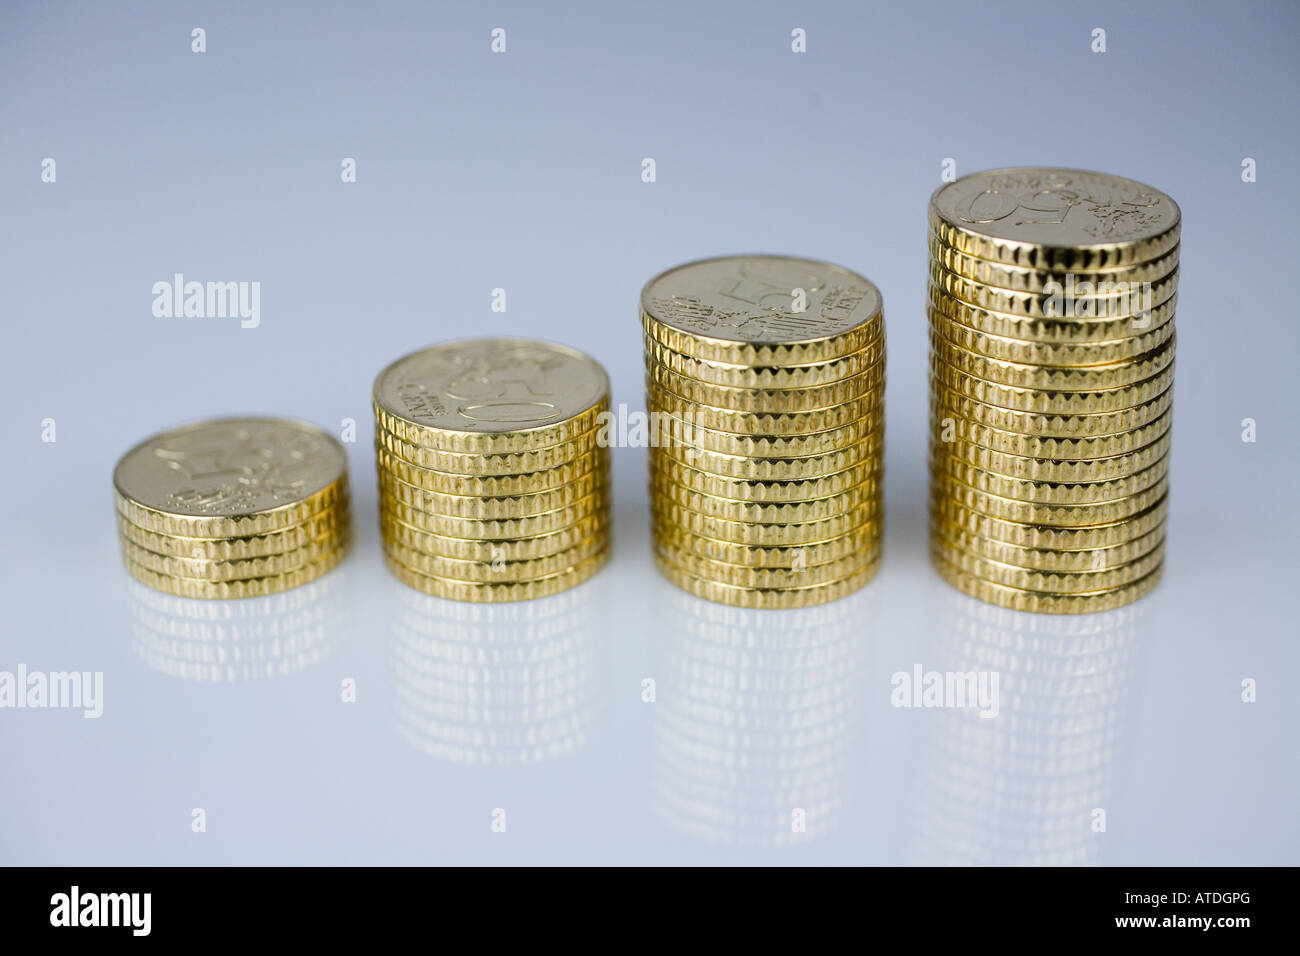 Pile with euro coins - Stock Image